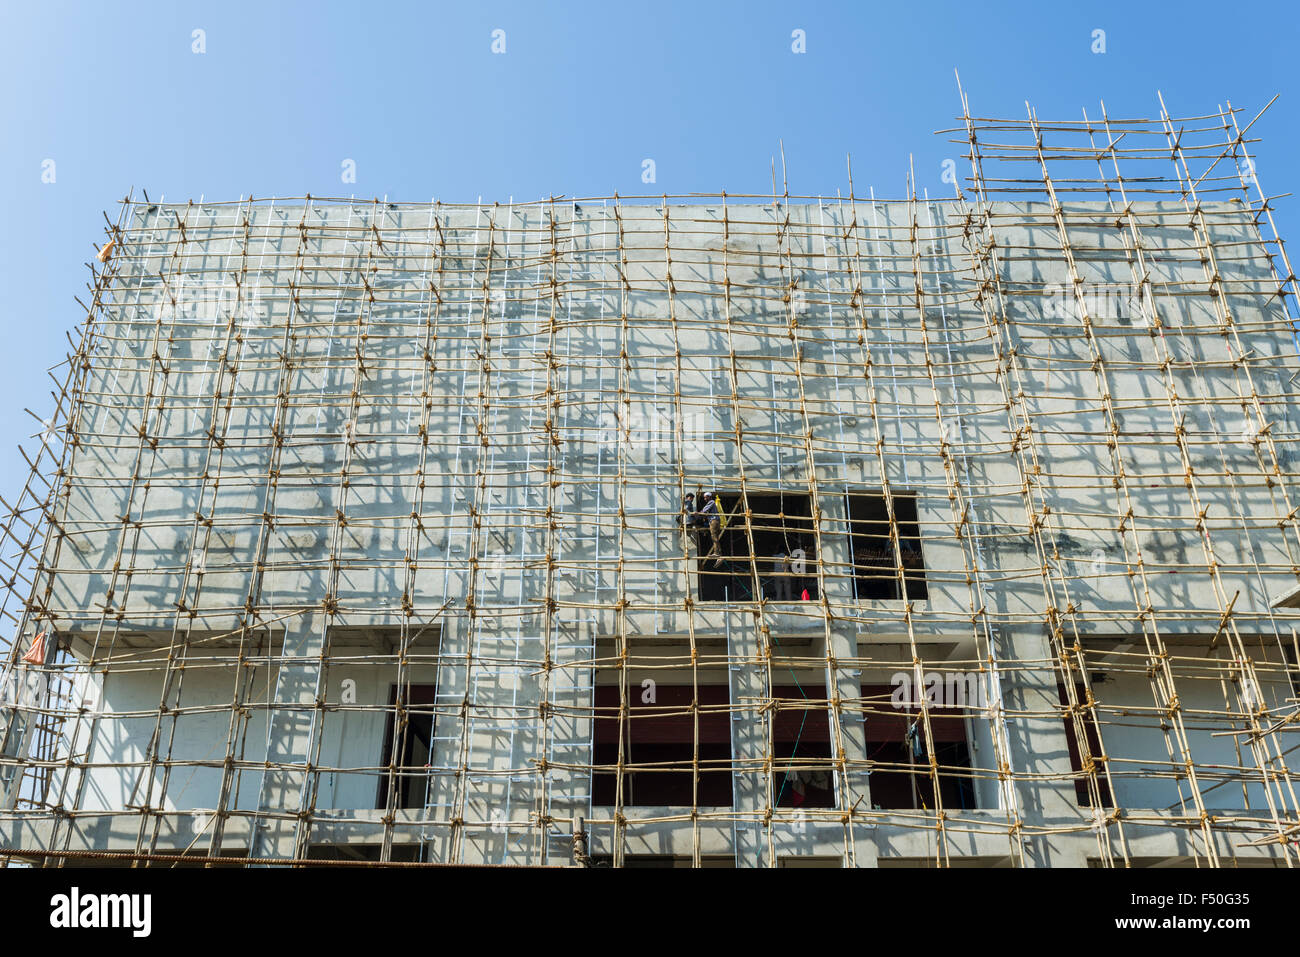 A construction site of a new concrete building with a bamboo scaffold attached - Stock Image